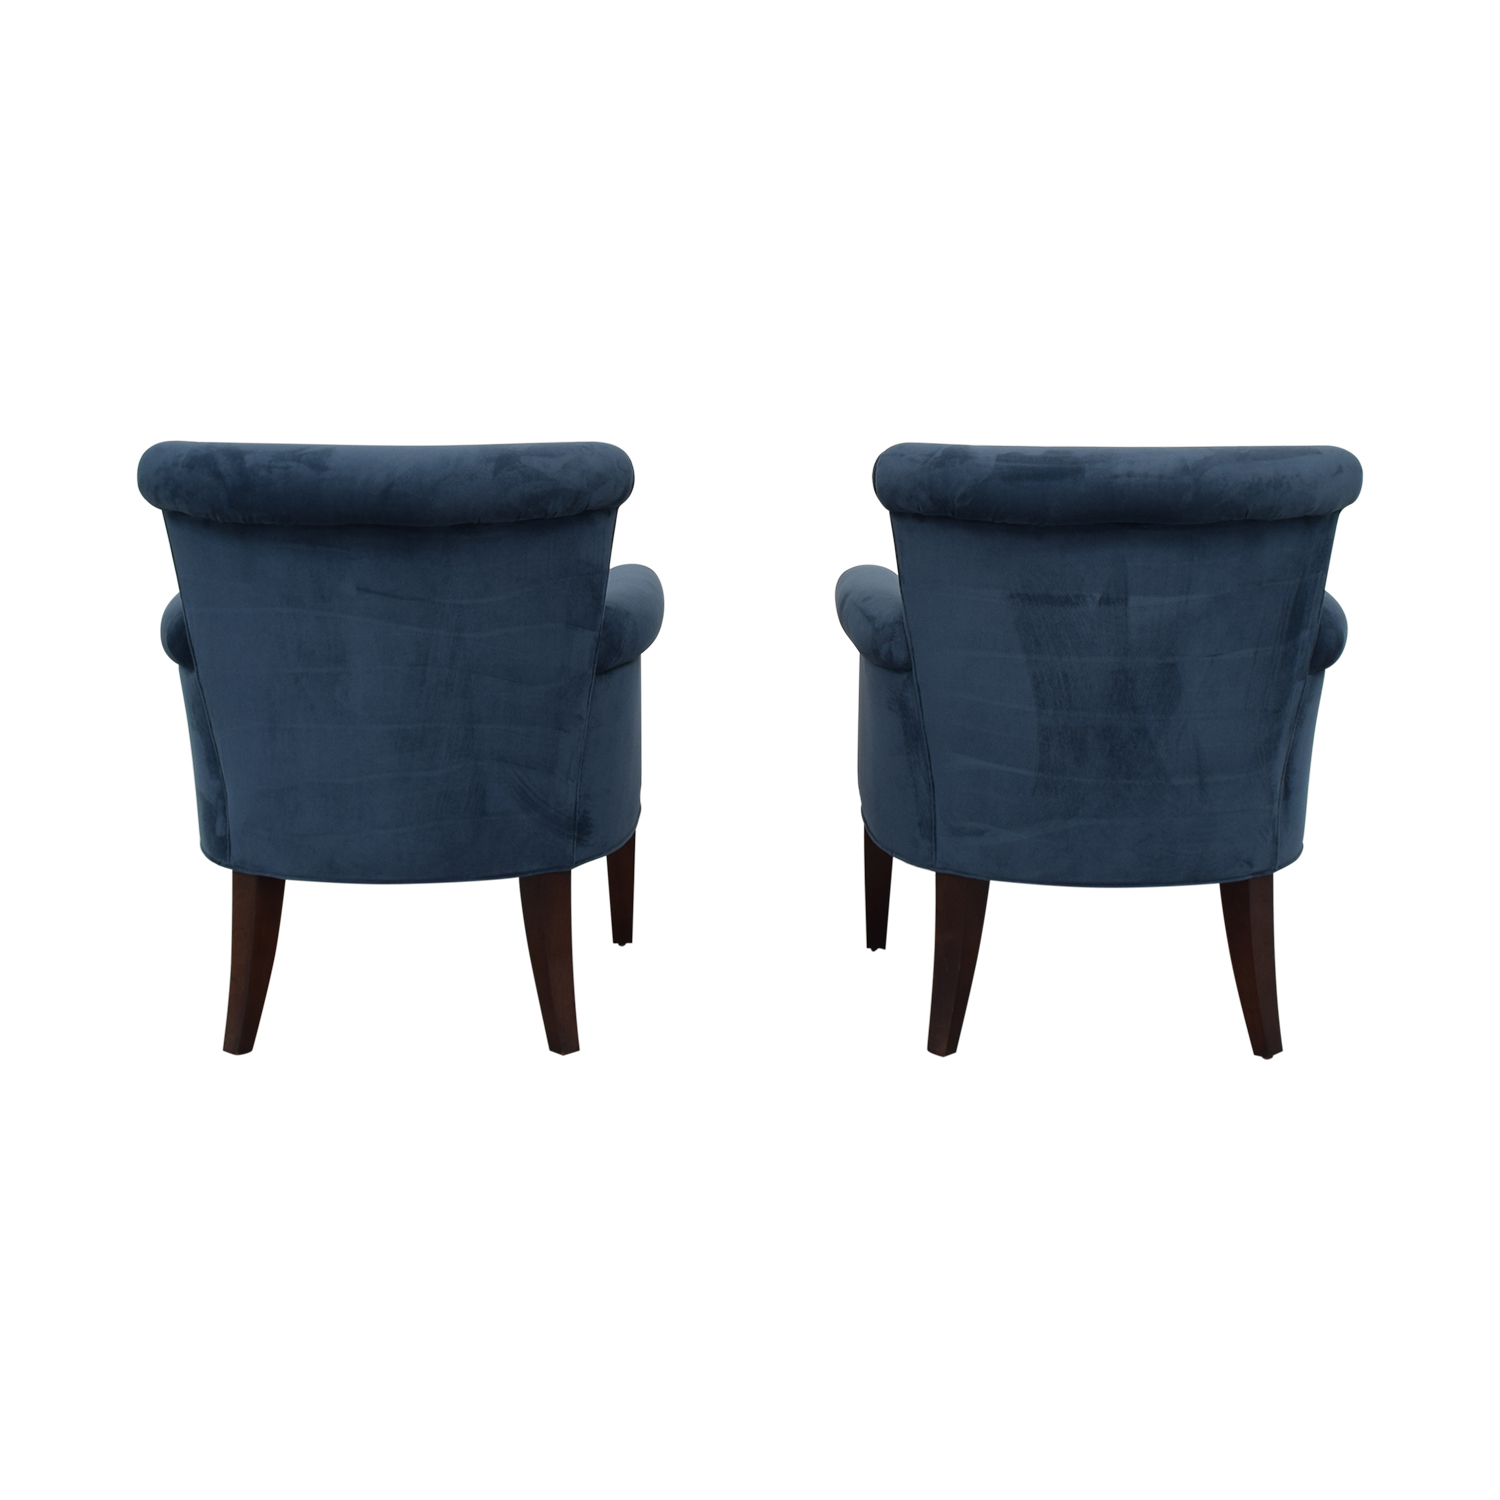 Stickley Furniture Sonoma Blue Accent Arm Chairs sale